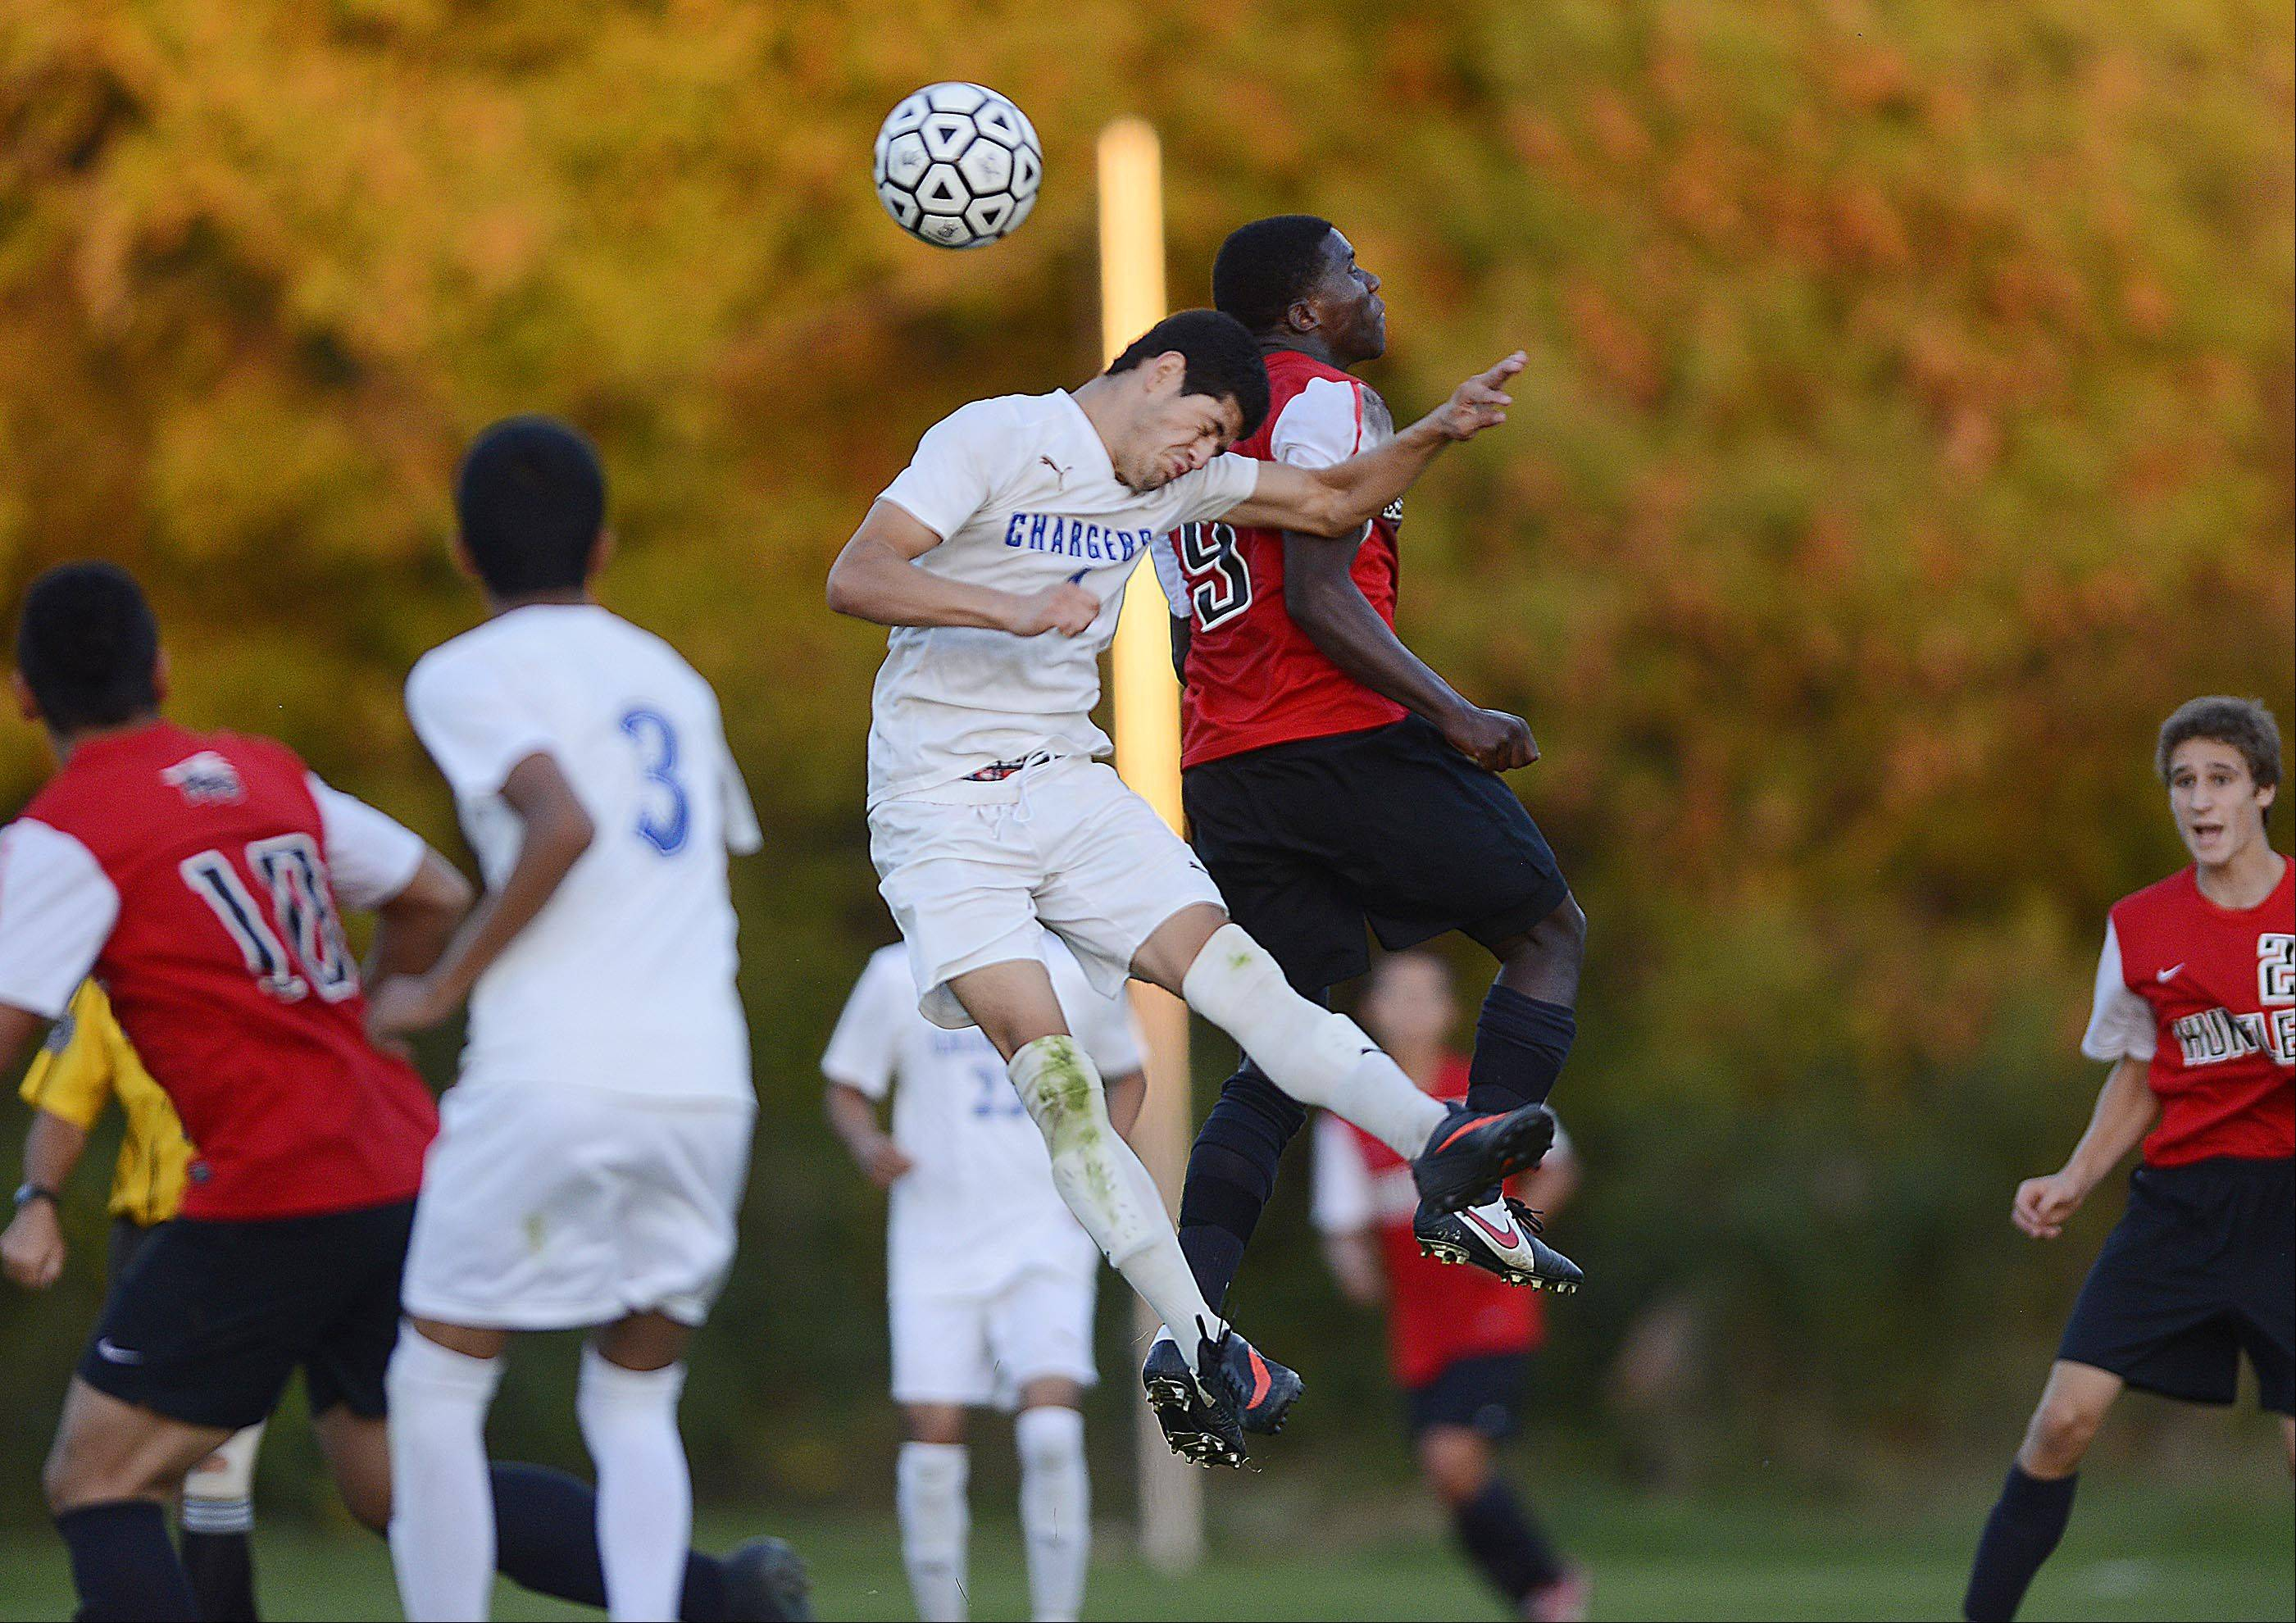 Dundee-Crown's Eduardo Arellano and Huntley's Scott Dorvilier compete for a header Tuesday in Carpentersville.